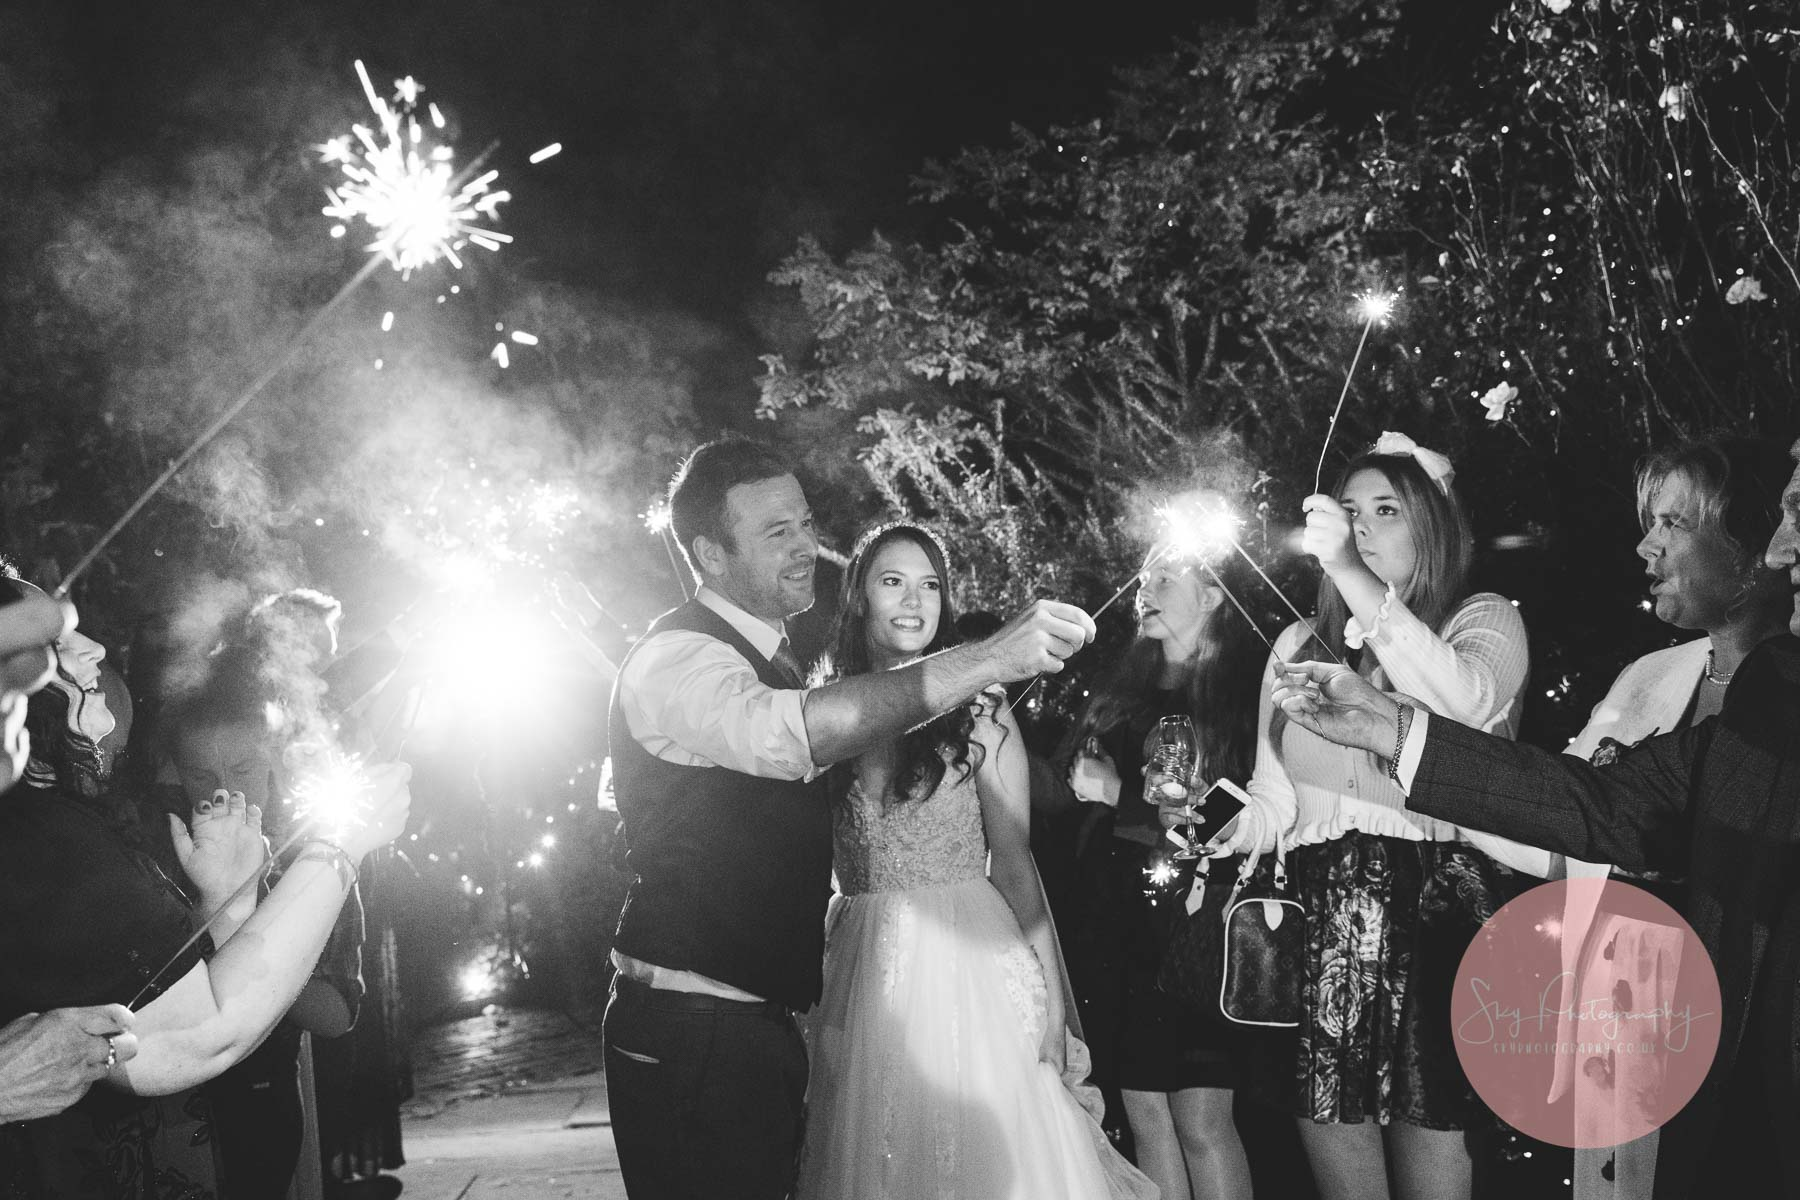 groom reaching for a sparkler with his bride in his arms